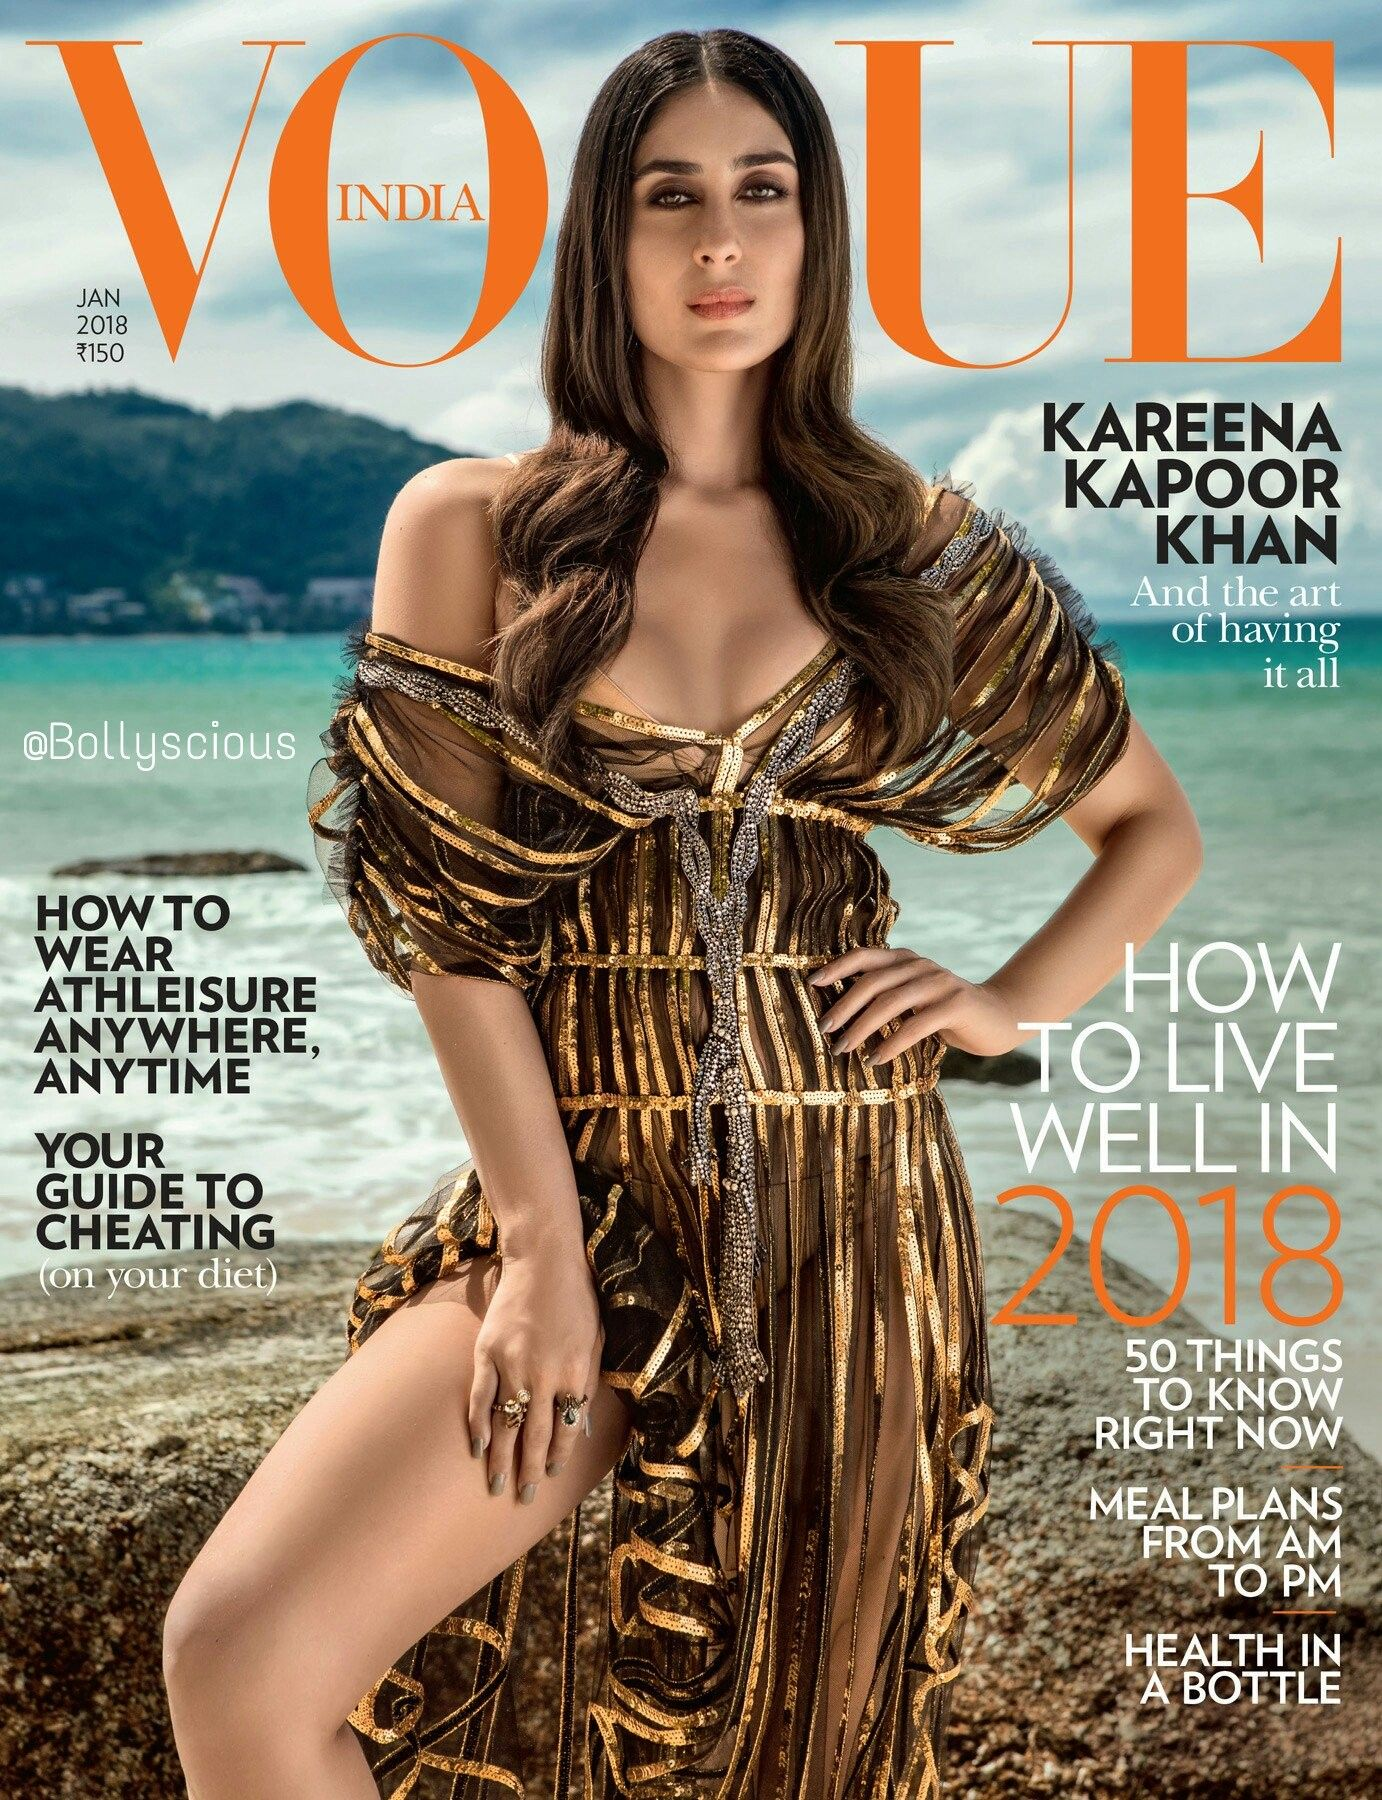 Kareena Kapoor Khan Vogue Magazine India January 2018 Bollywood Celebrities Vogue India Kareena Kapoor